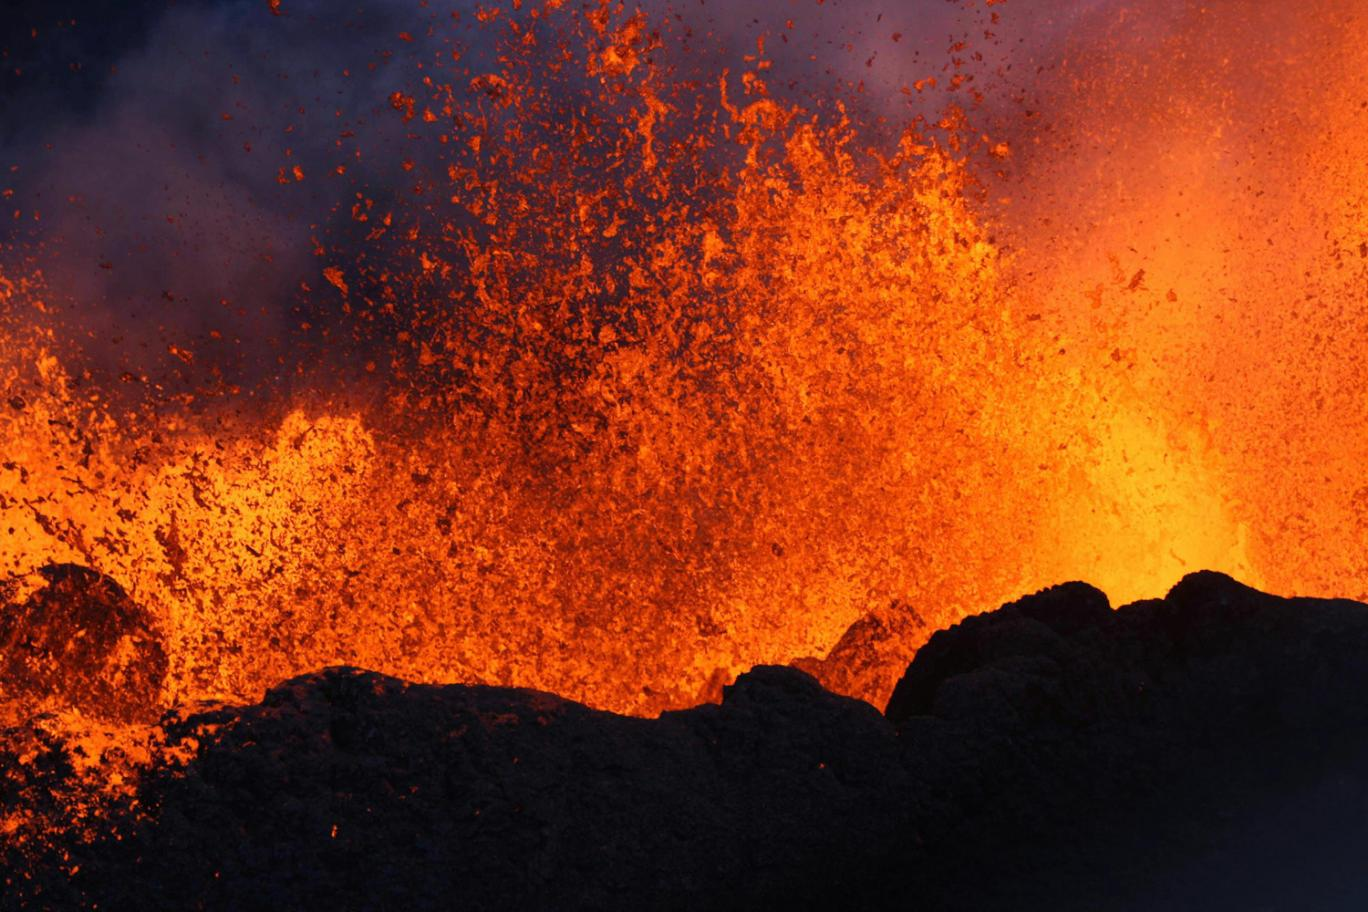 Geologists study the formation of volcanoes